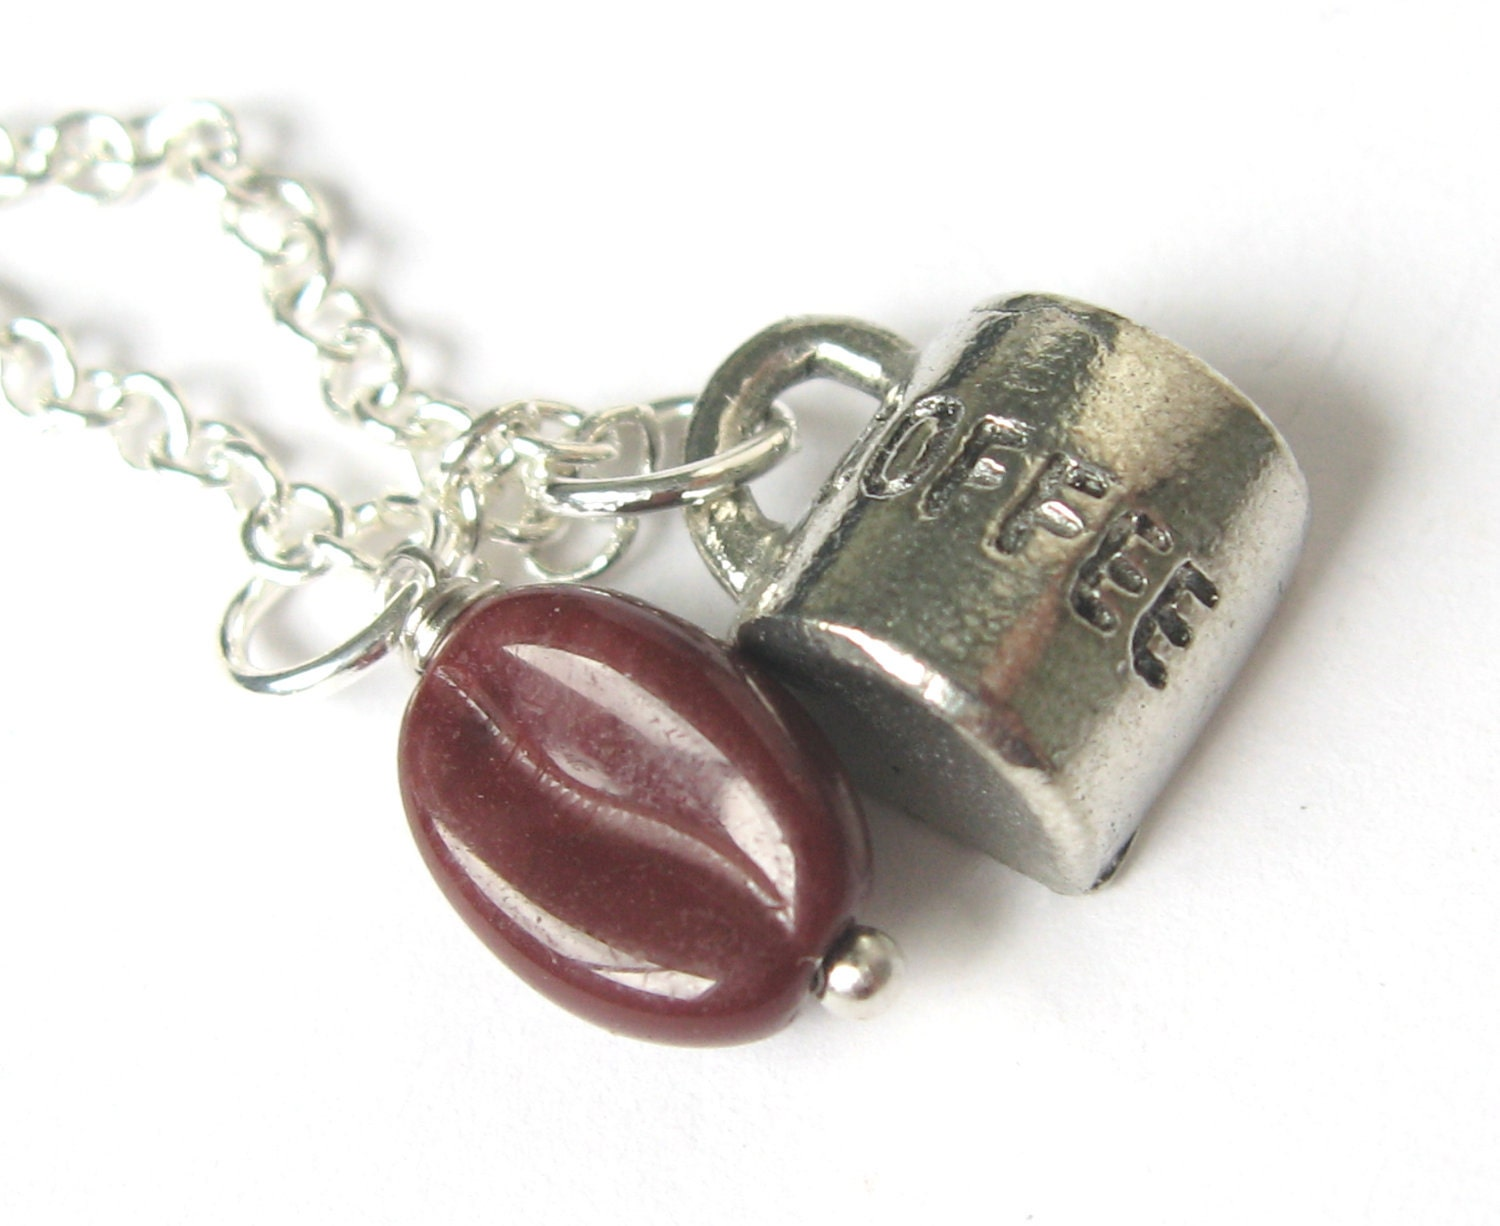 Coffee Bean Necklace - Cup Charm